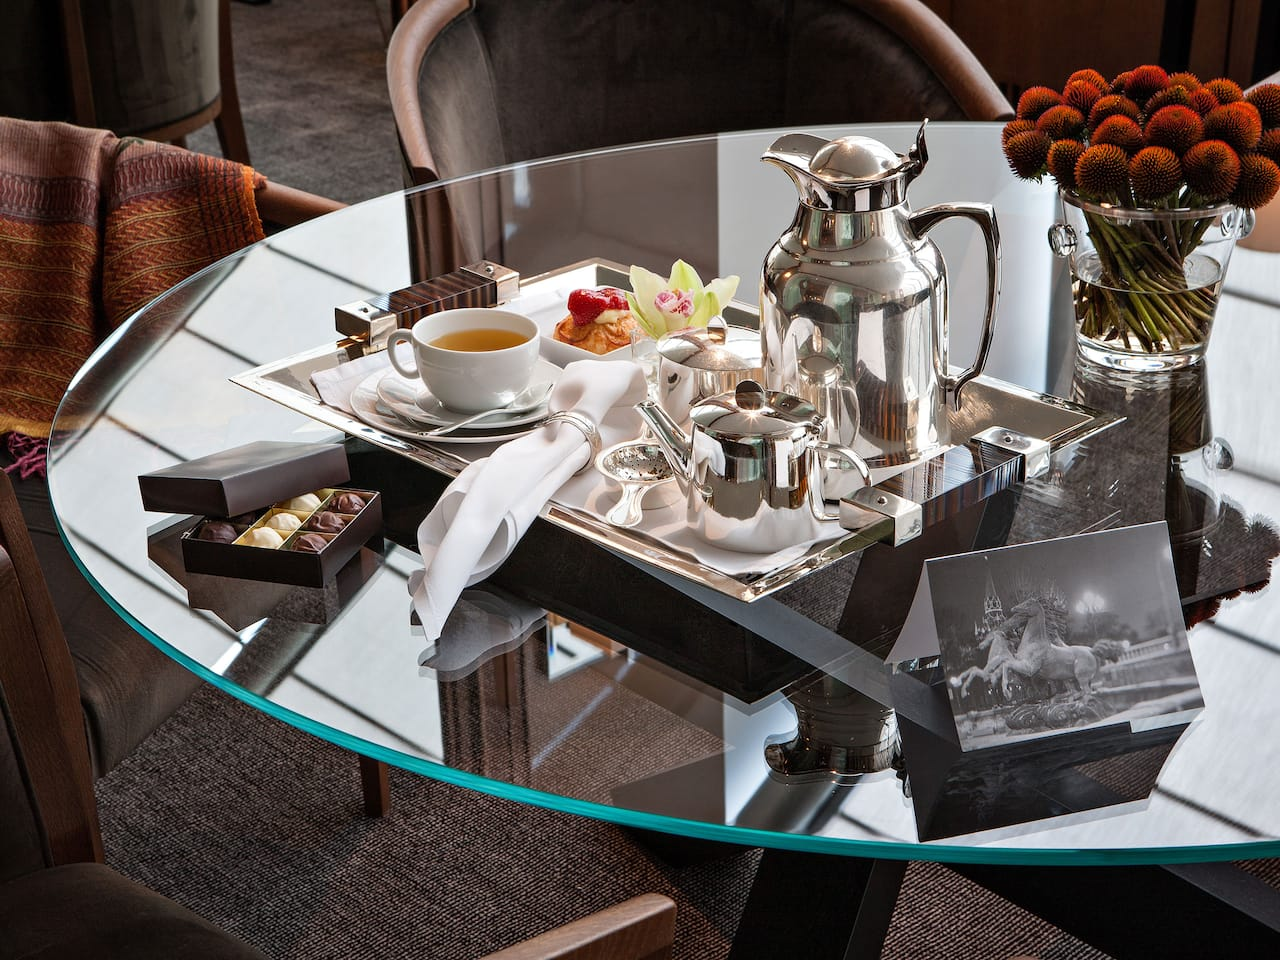 Room service in a luxury hotel in Moscow